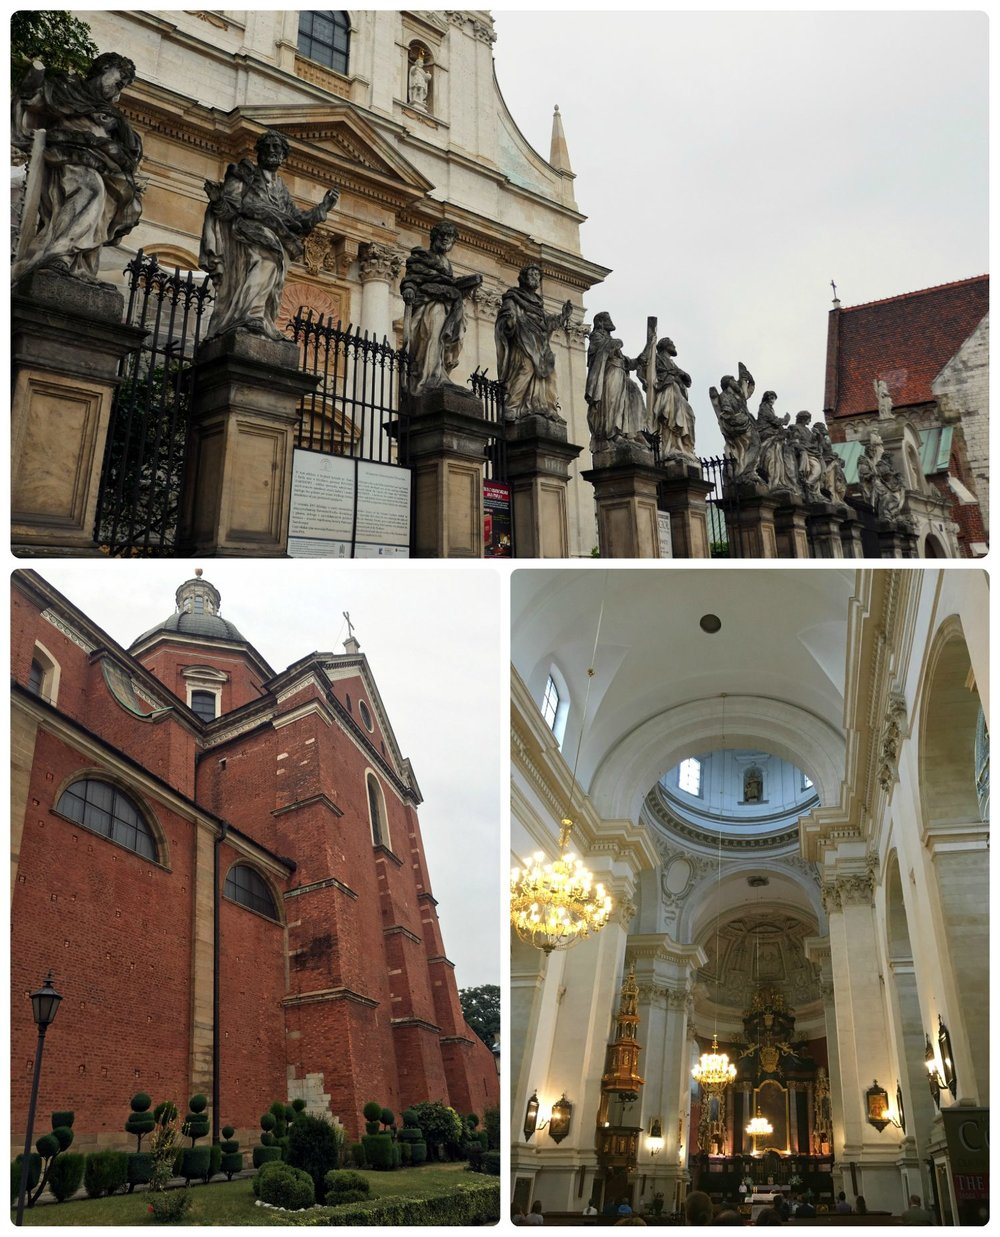 The view of the front exterior of Church of Saints Peter and Paul in Krakow, Poland is sure to catch your attention with the row of sculptures that top the gate.